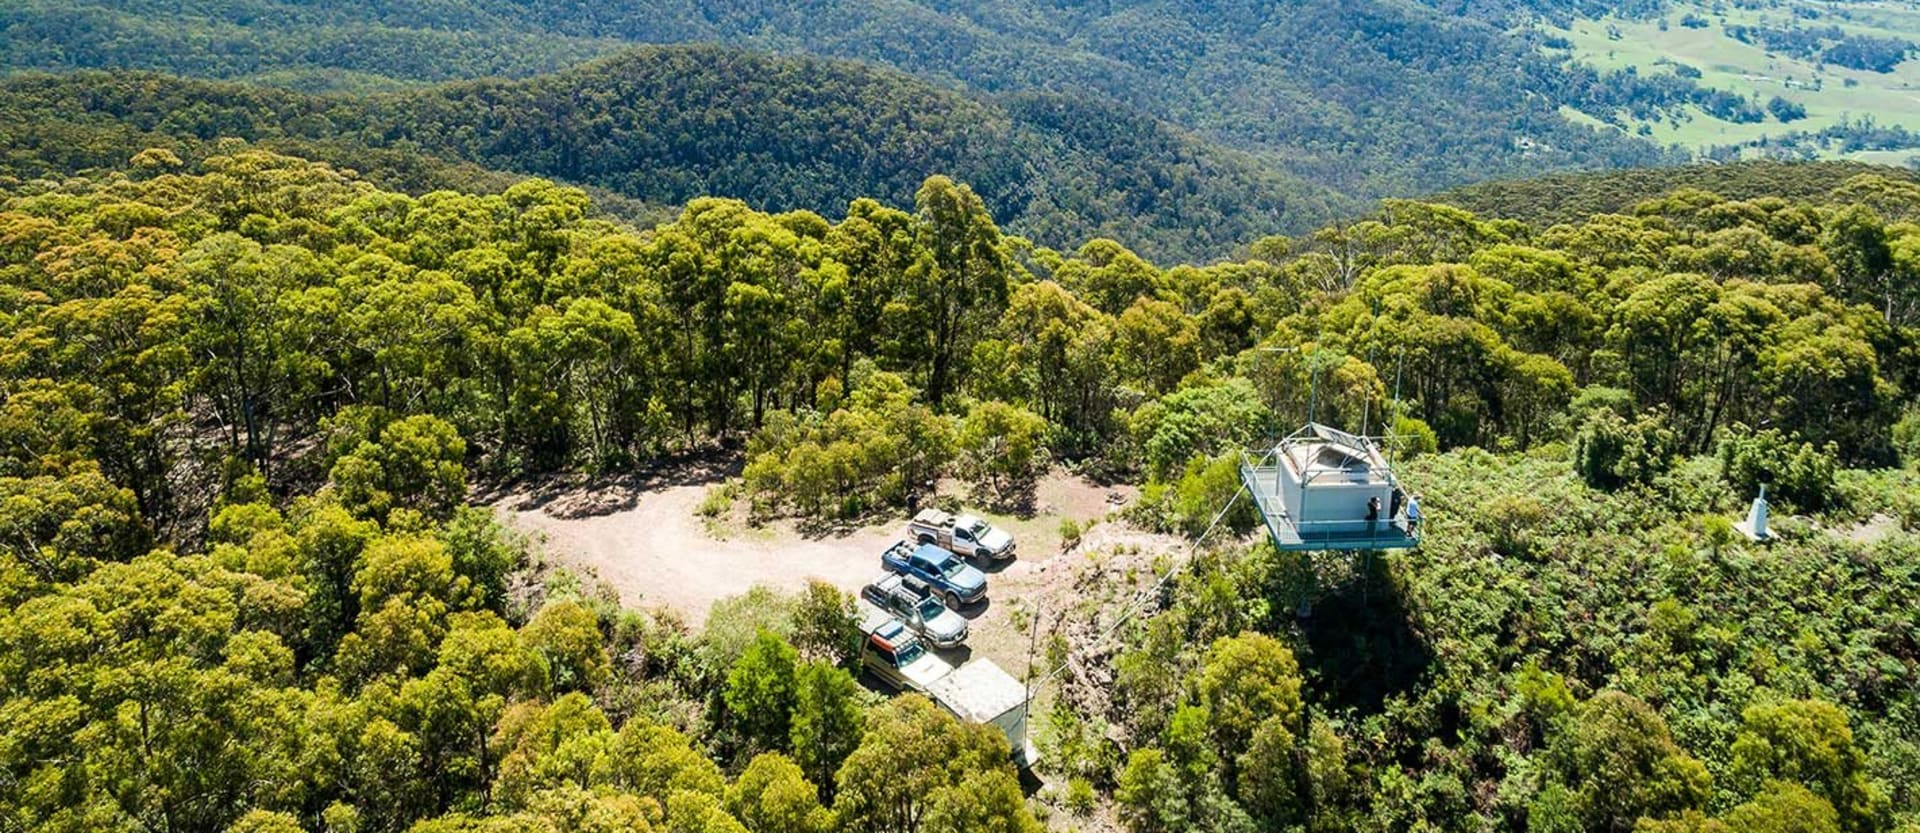 Exploring NSW South-East part 2 4x4 Adventure Series